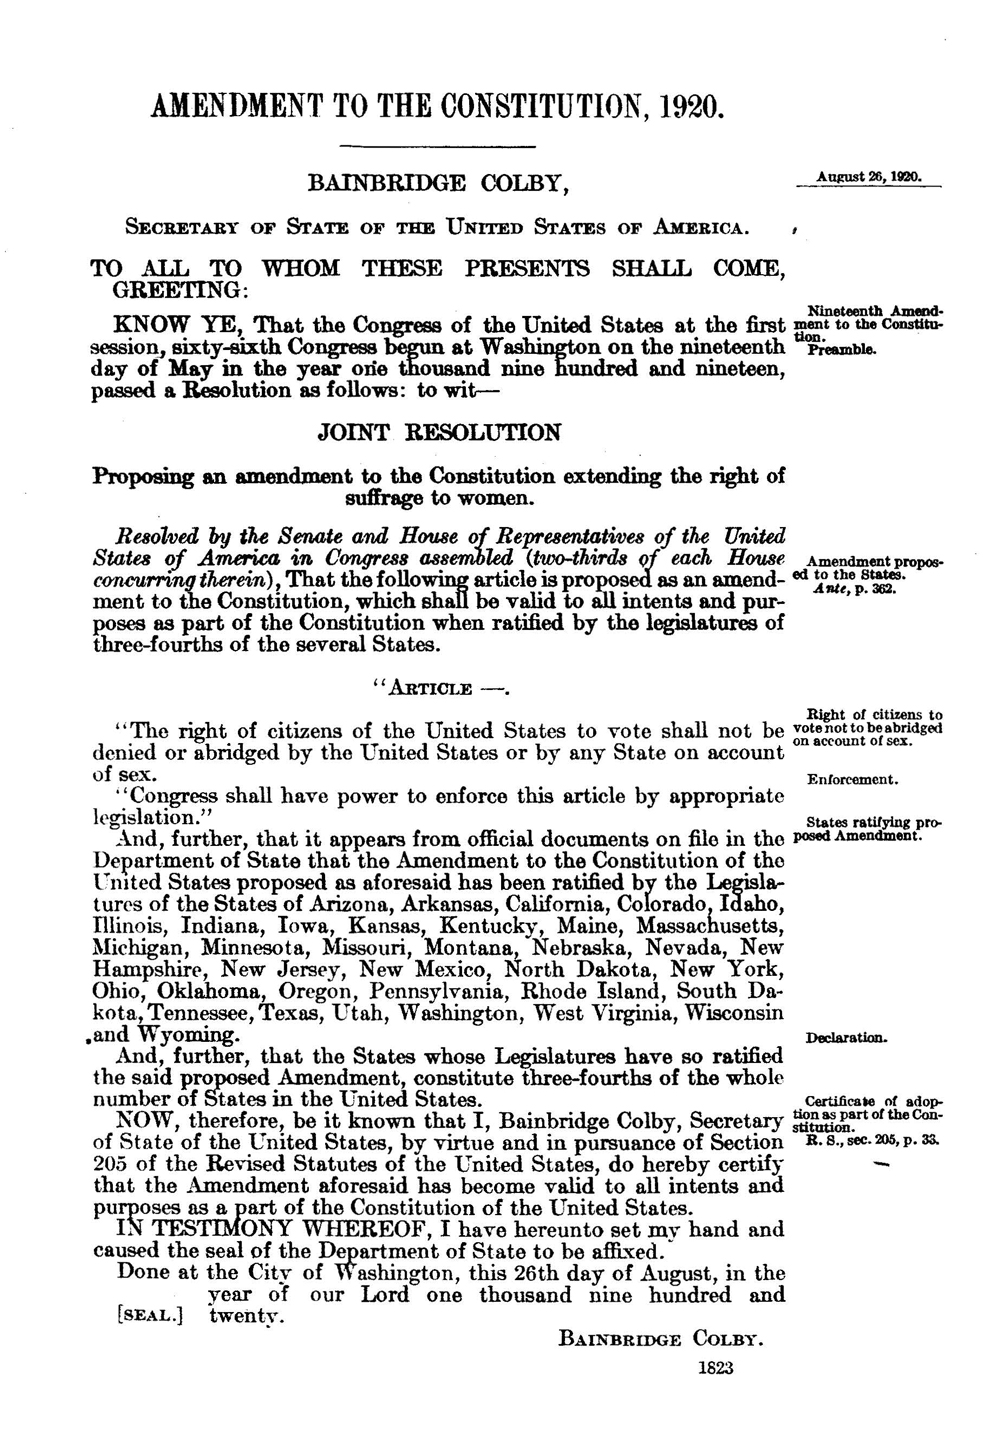 After Congress approved of a women's suffrage amendment to the Constitution and three-fourths of the states ratified it, on August 26, 1920 Secretary of State Bainbridge Colby officially certified the 19th Amendment with his signature and the seal of the United States.